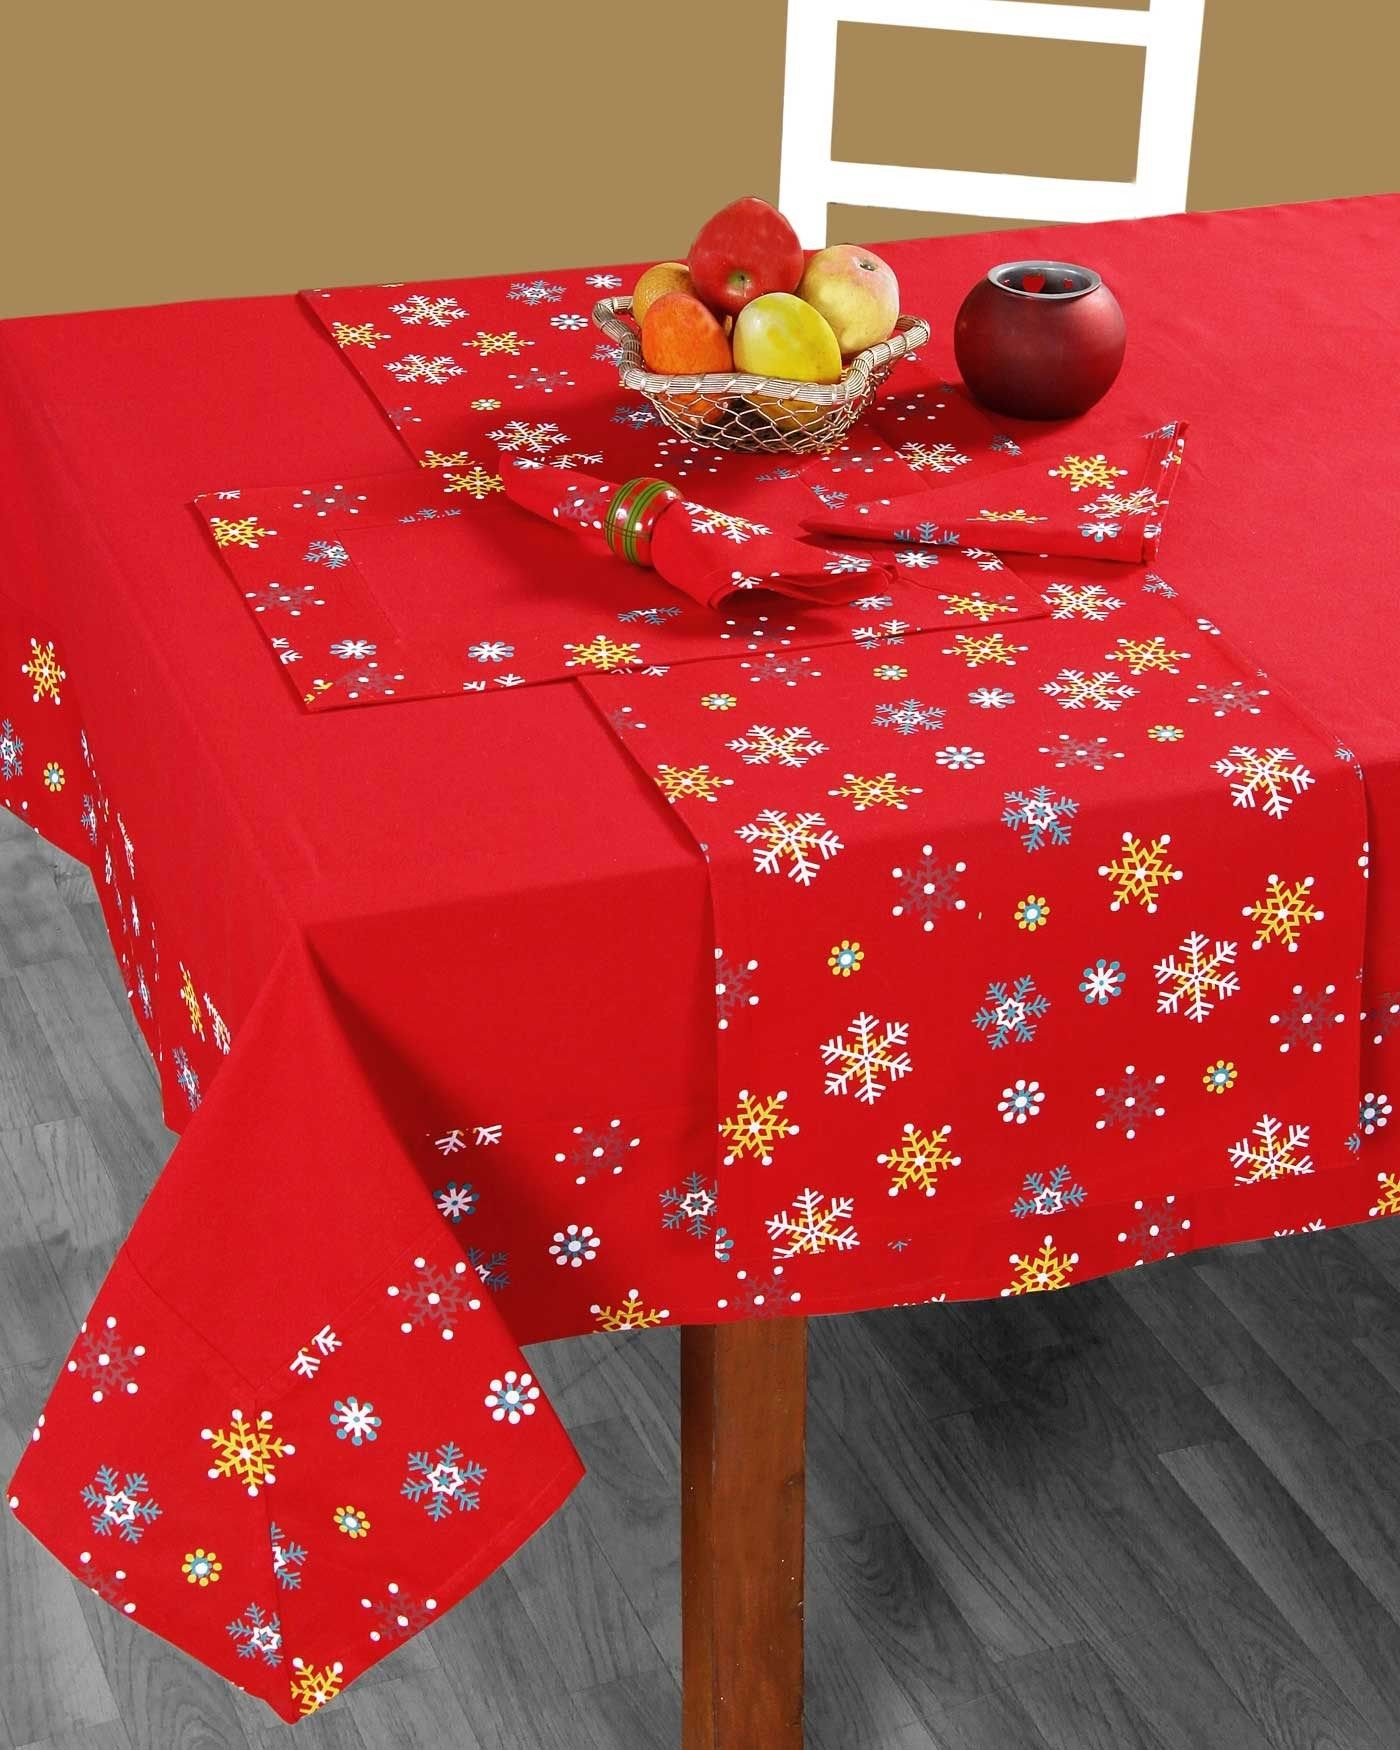 This Festive Red Cotton Tablecloth With A Decorative Snowflake Border Is Guaranteed To Get Everyone At Your Table Feel Christmas Table Cloth Christmas Baubles Red Christmas